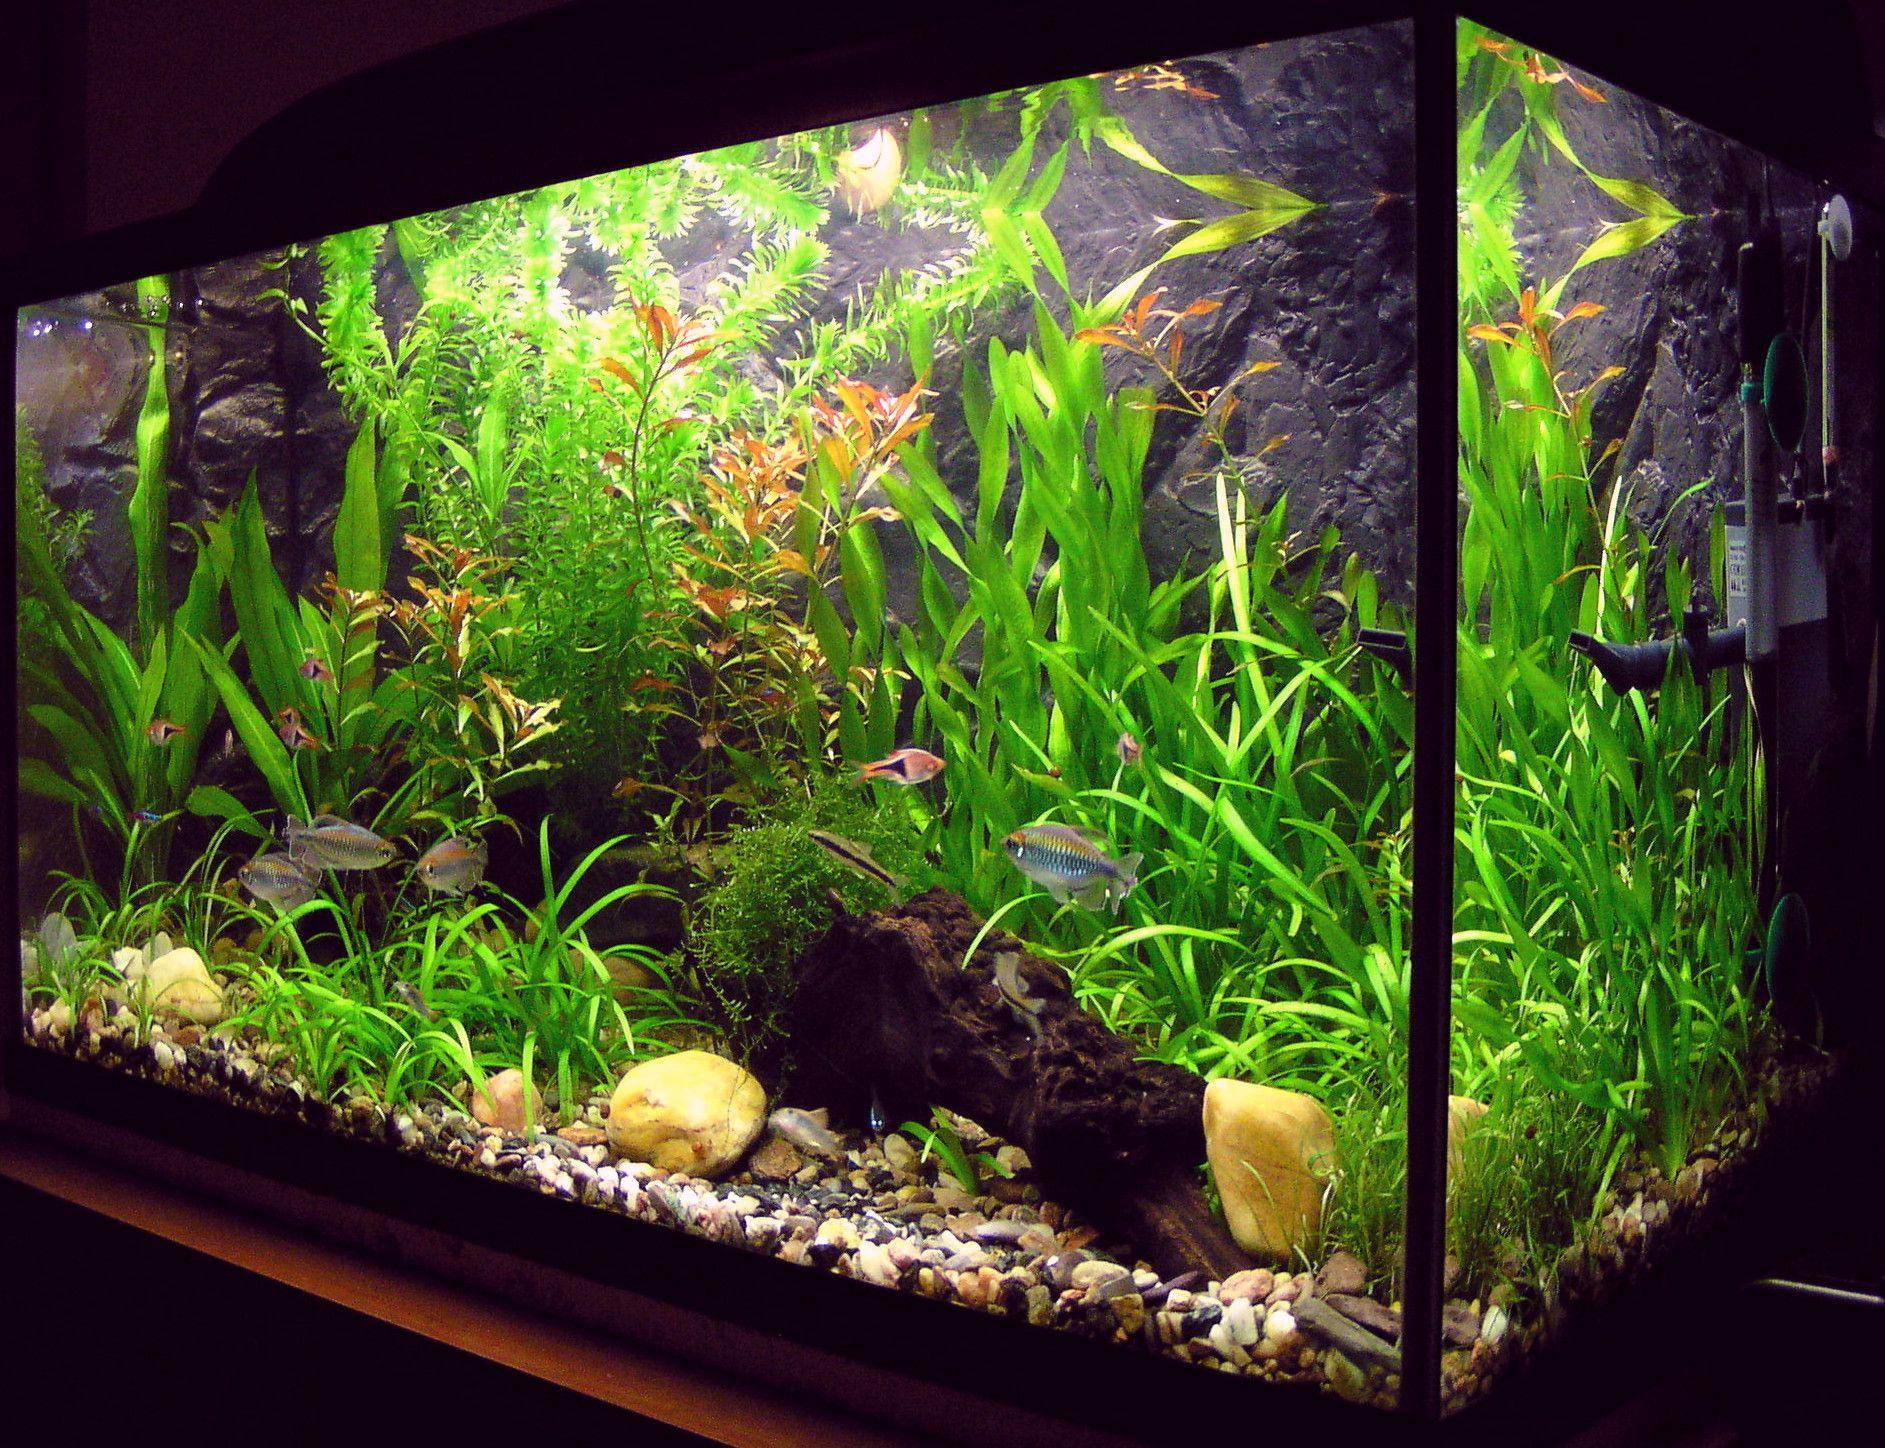 Freshwater aquarium odd fish - Beautiful Freshwater Aquarium More